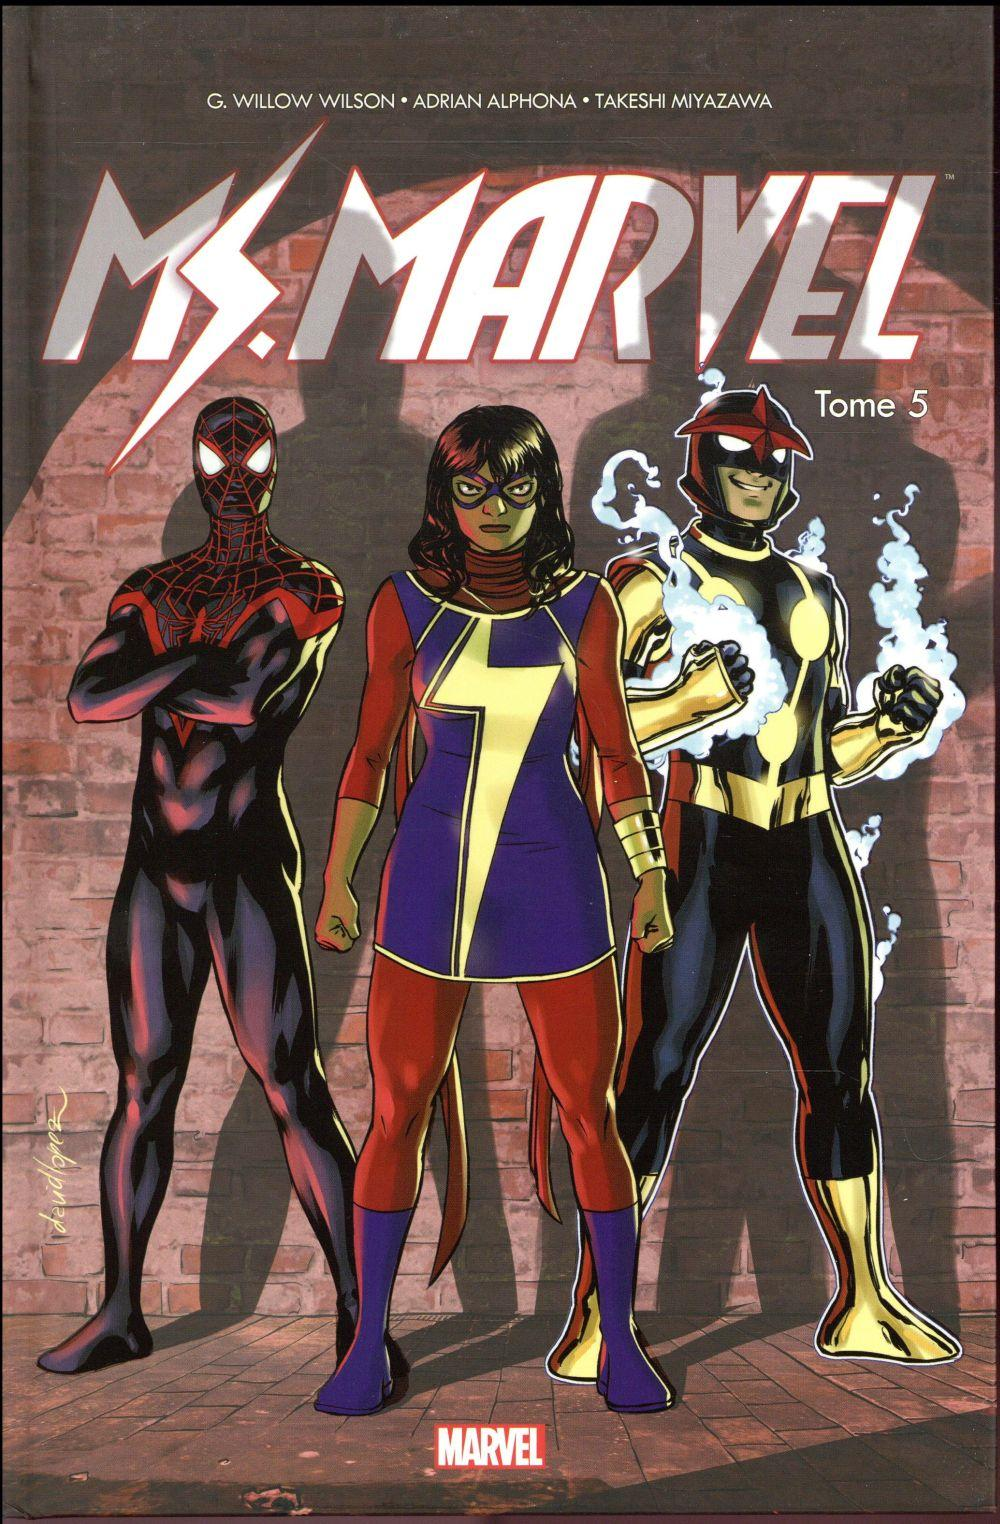 Ms. Marvel T.5  - G. Willow Wilson  - Adrian Alphona  - Takeshi Miyazawa